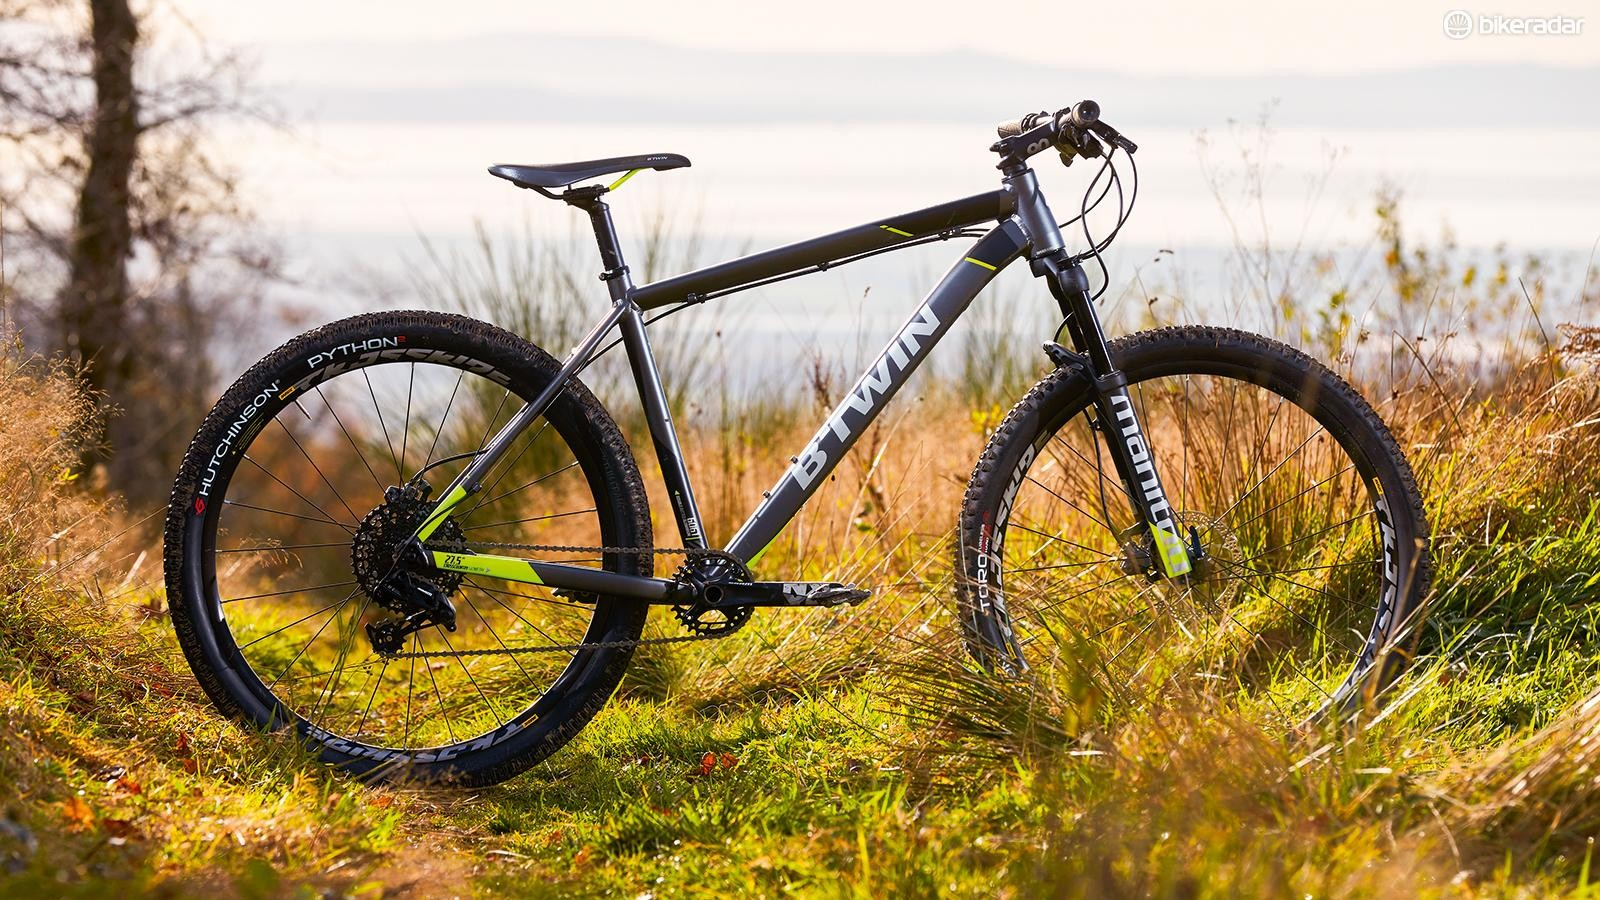 The Rockrider 900 is a top value choice for those who like to travel quickly on the trails